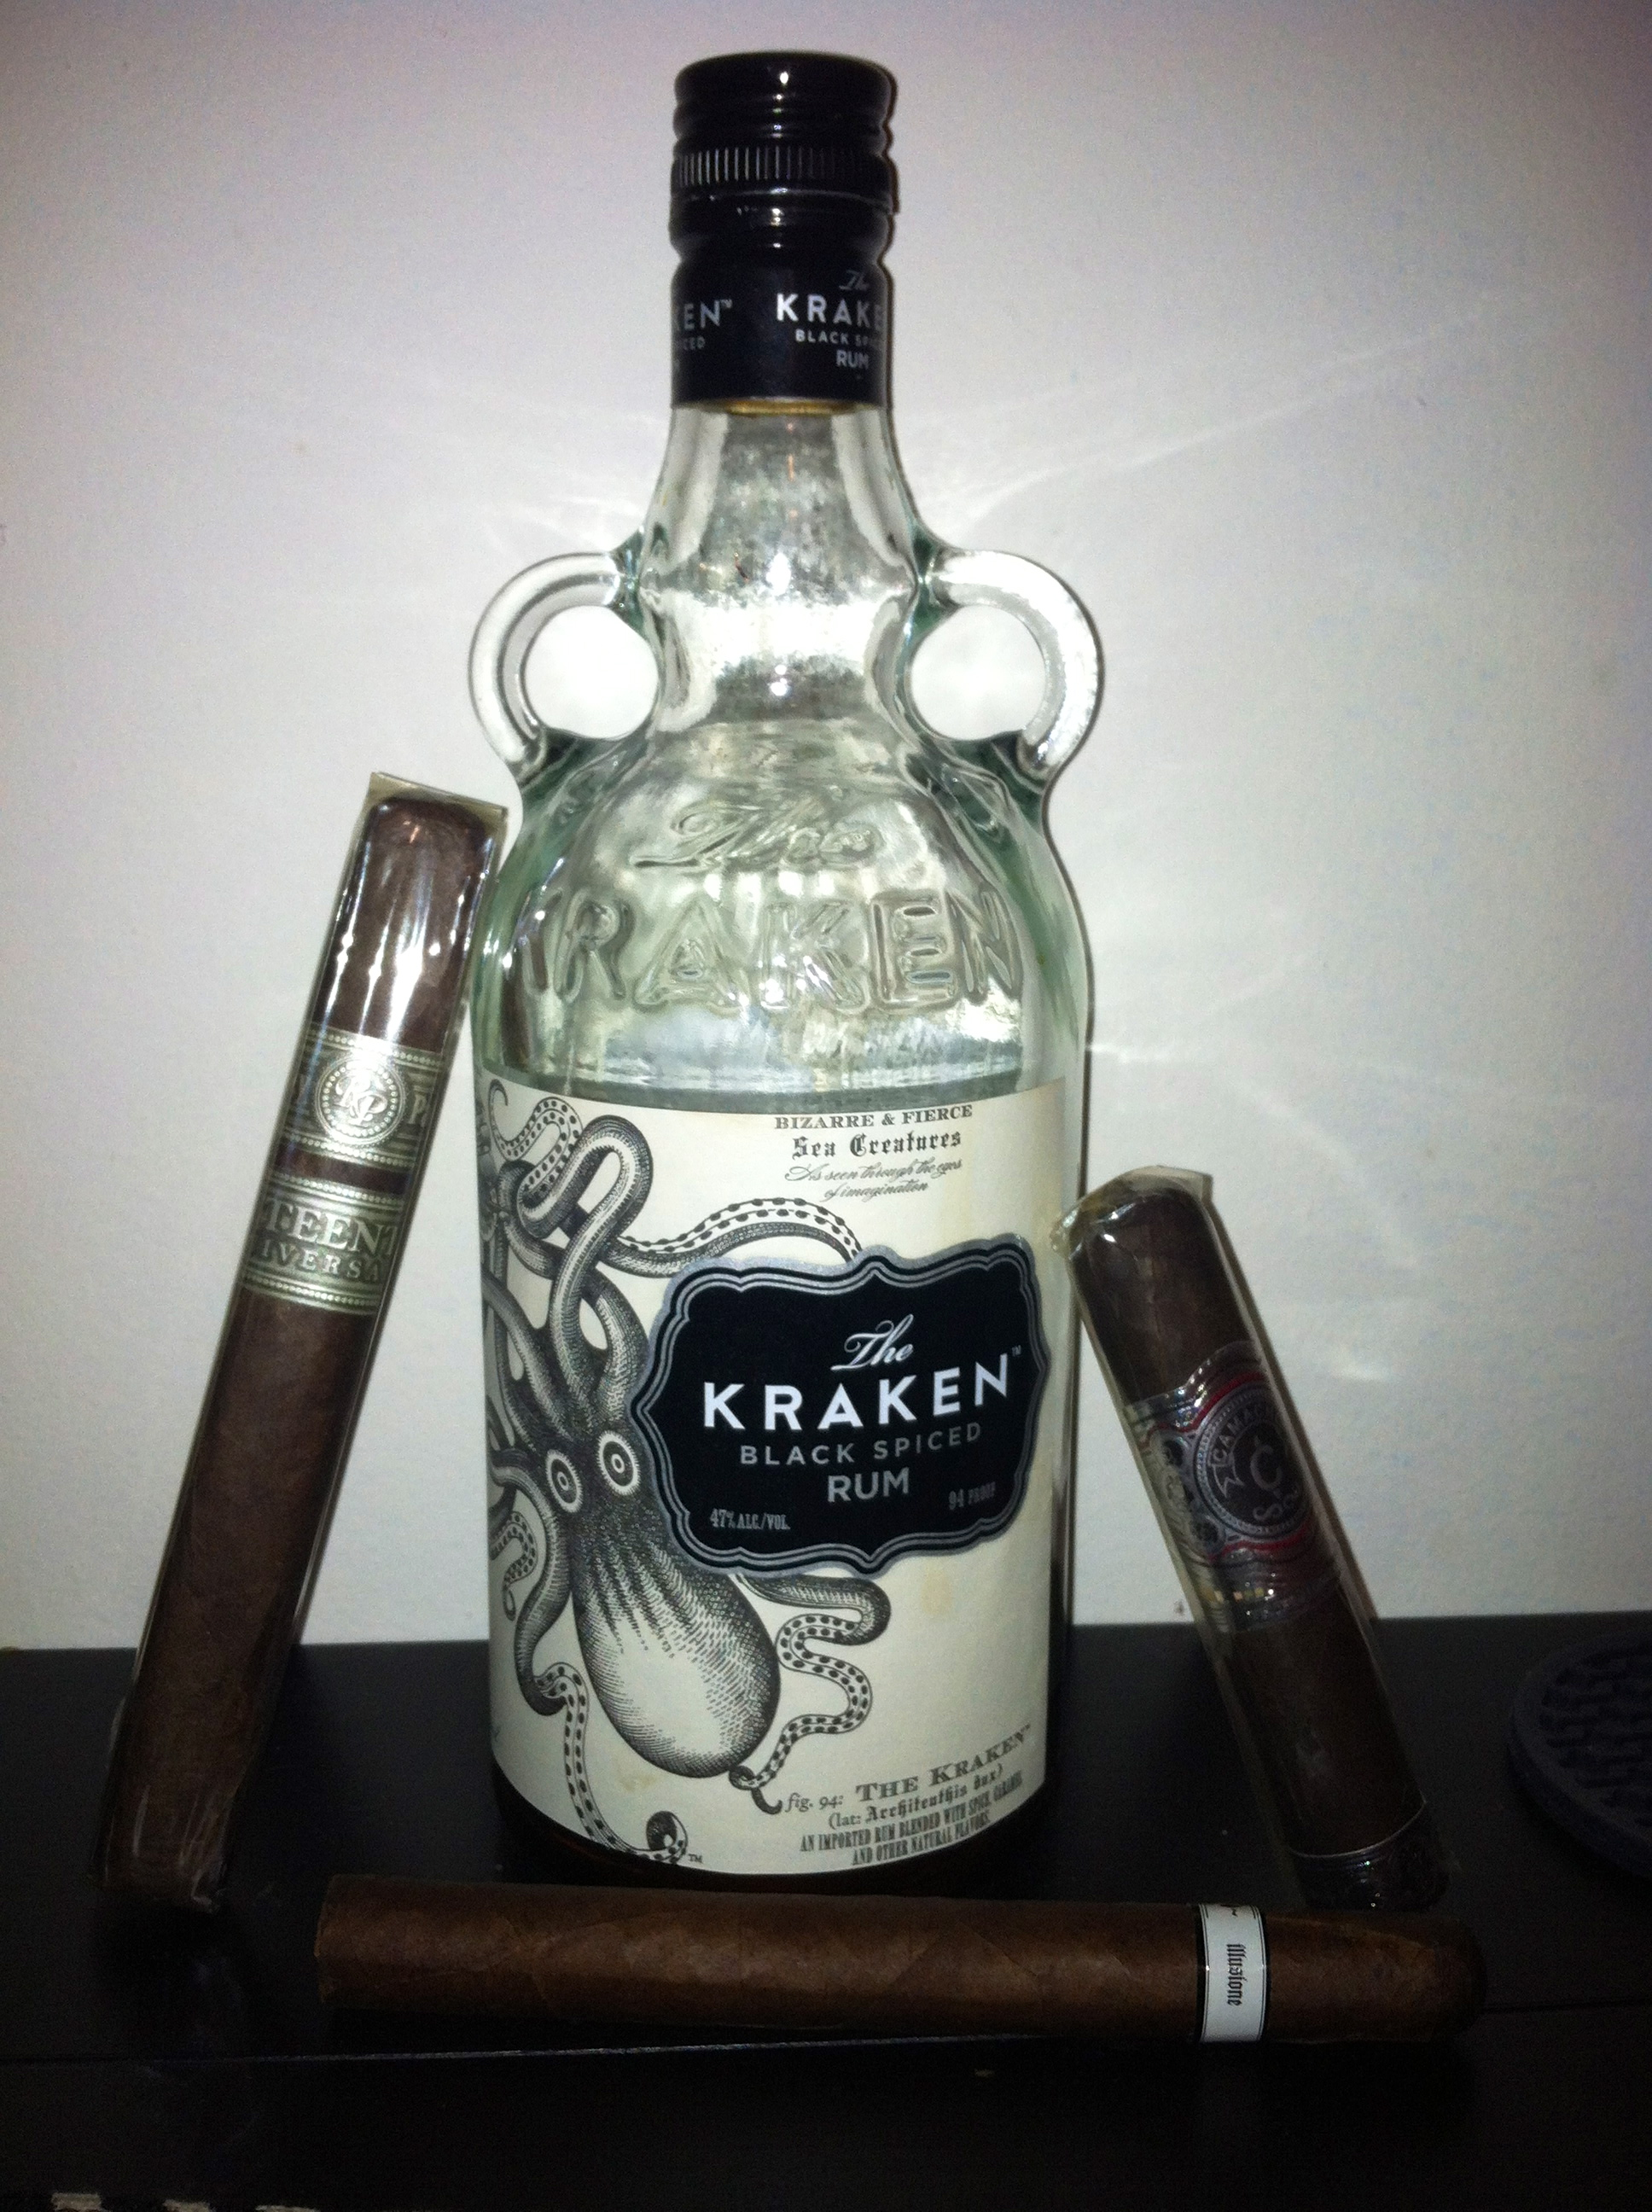 Rum review the kraken black spiced rum fine tobacco nyc - Kraken rum pictures ...